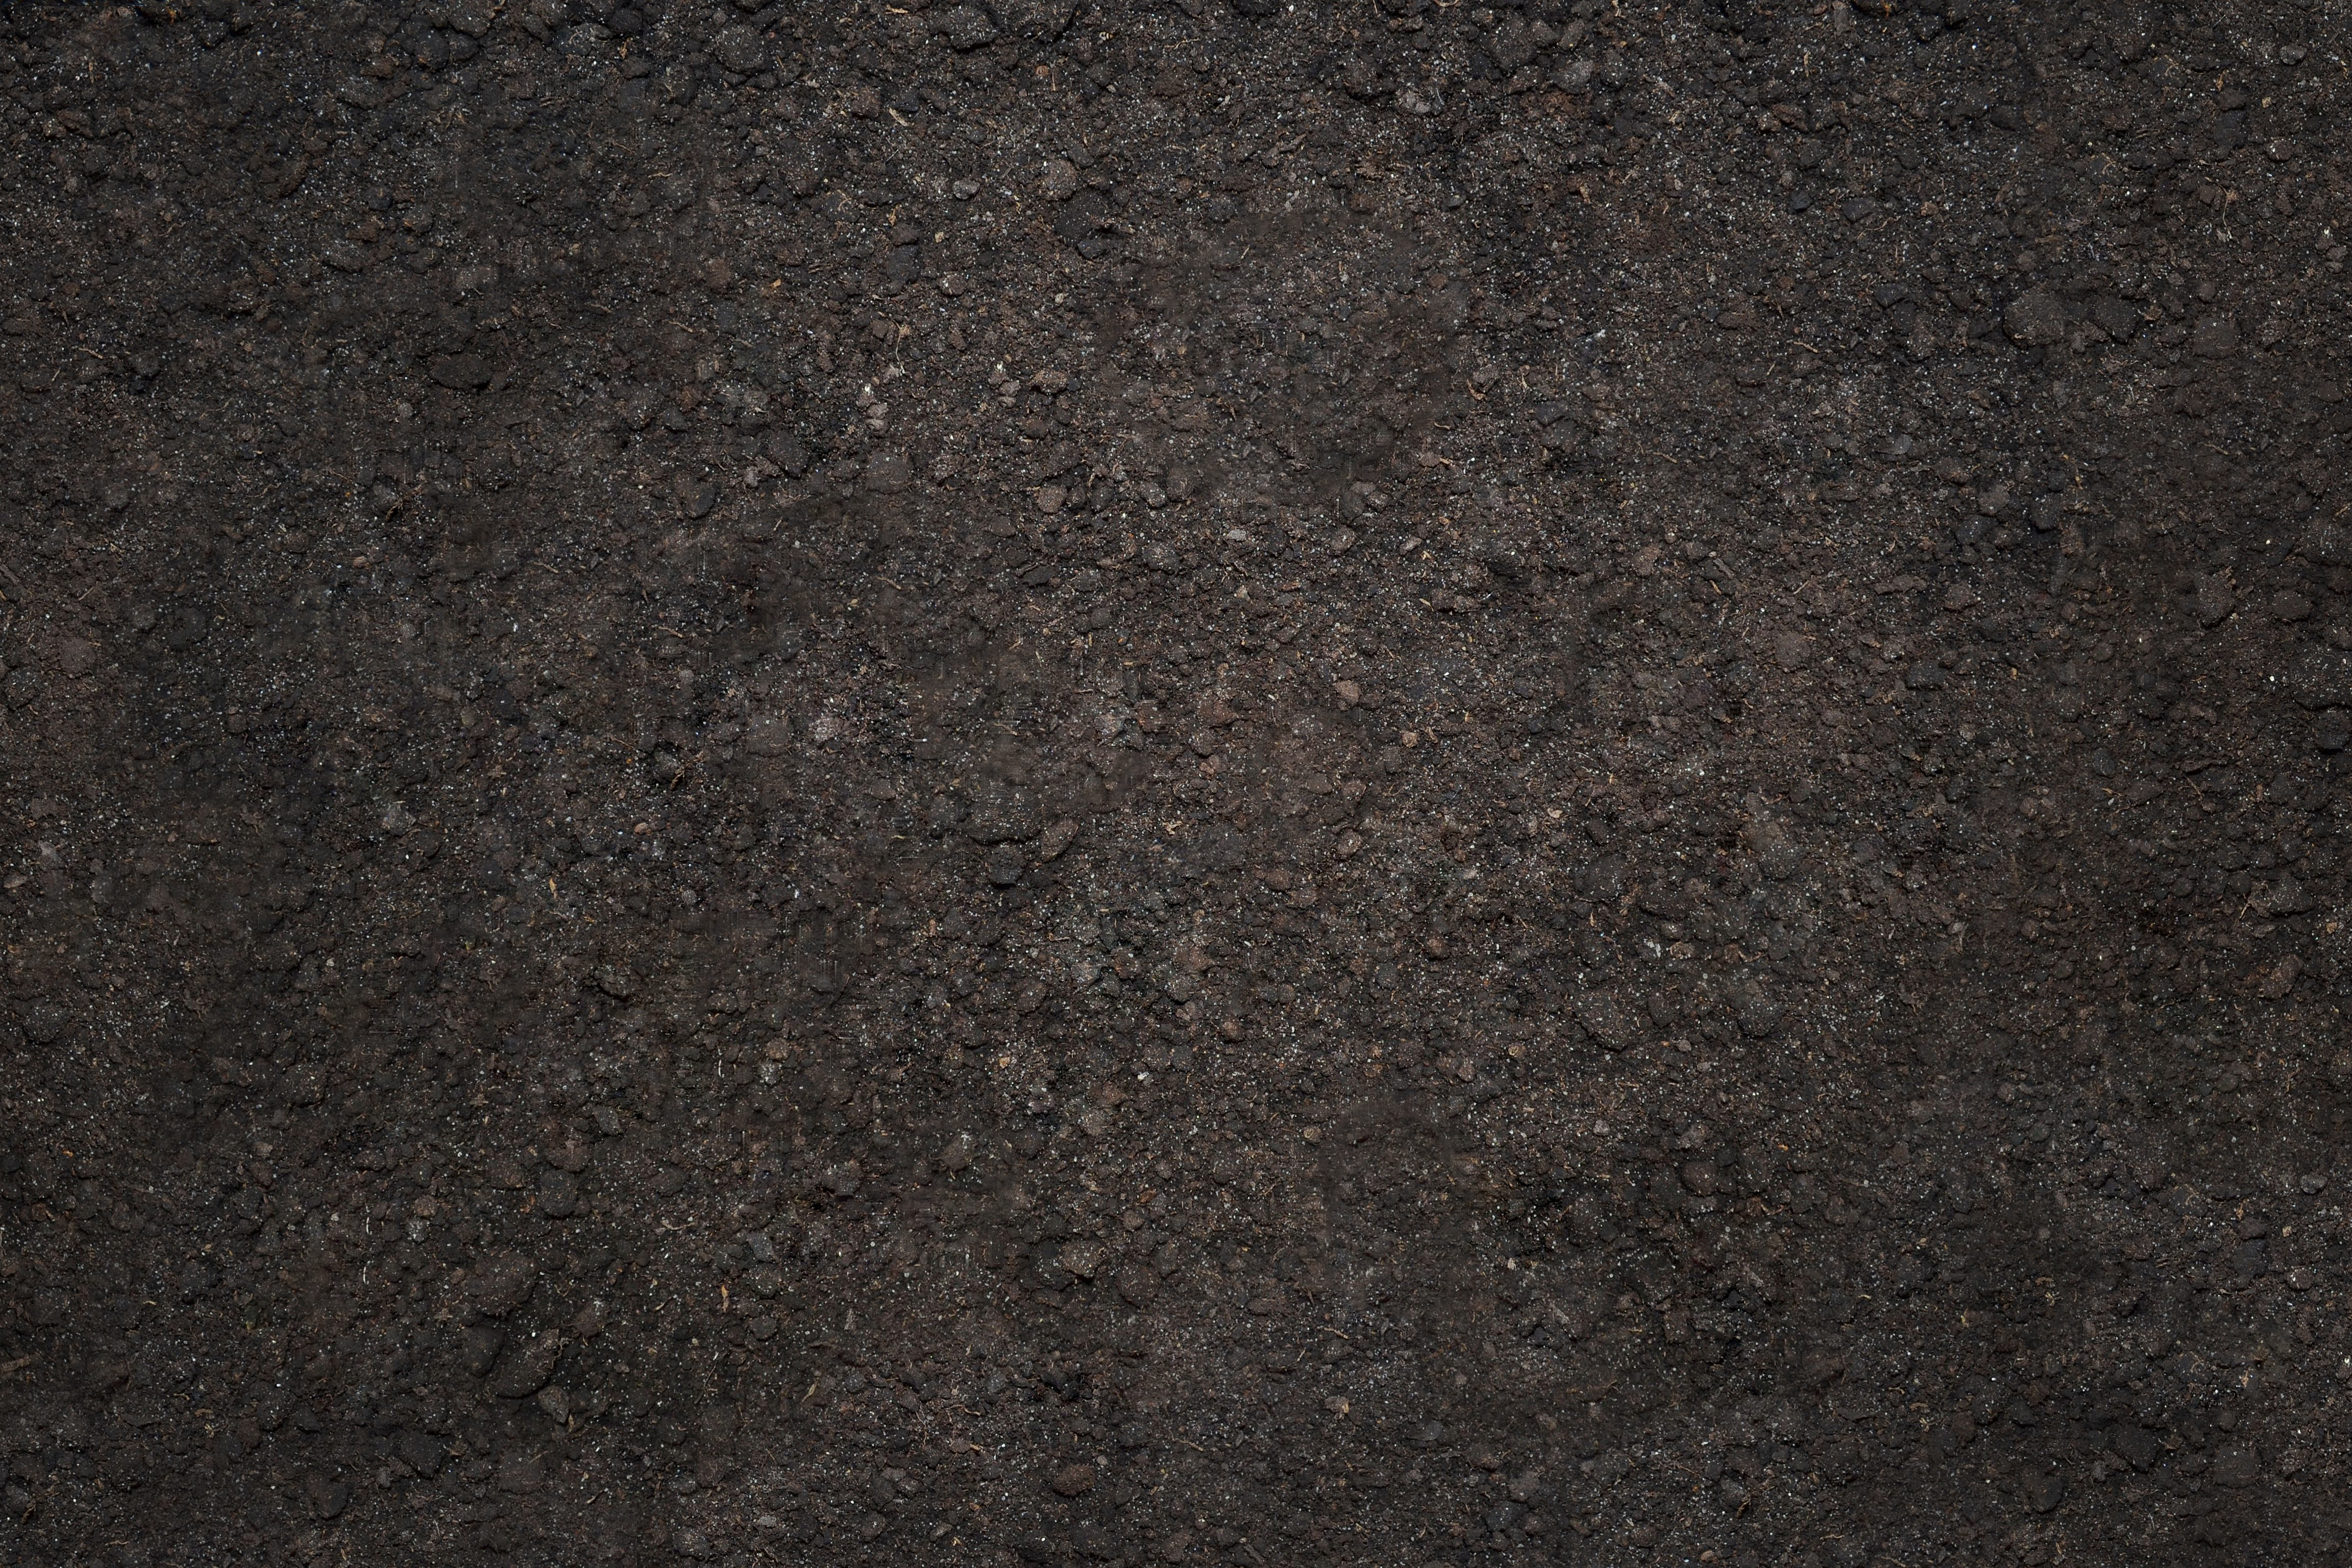 texture in the form of plowed soil